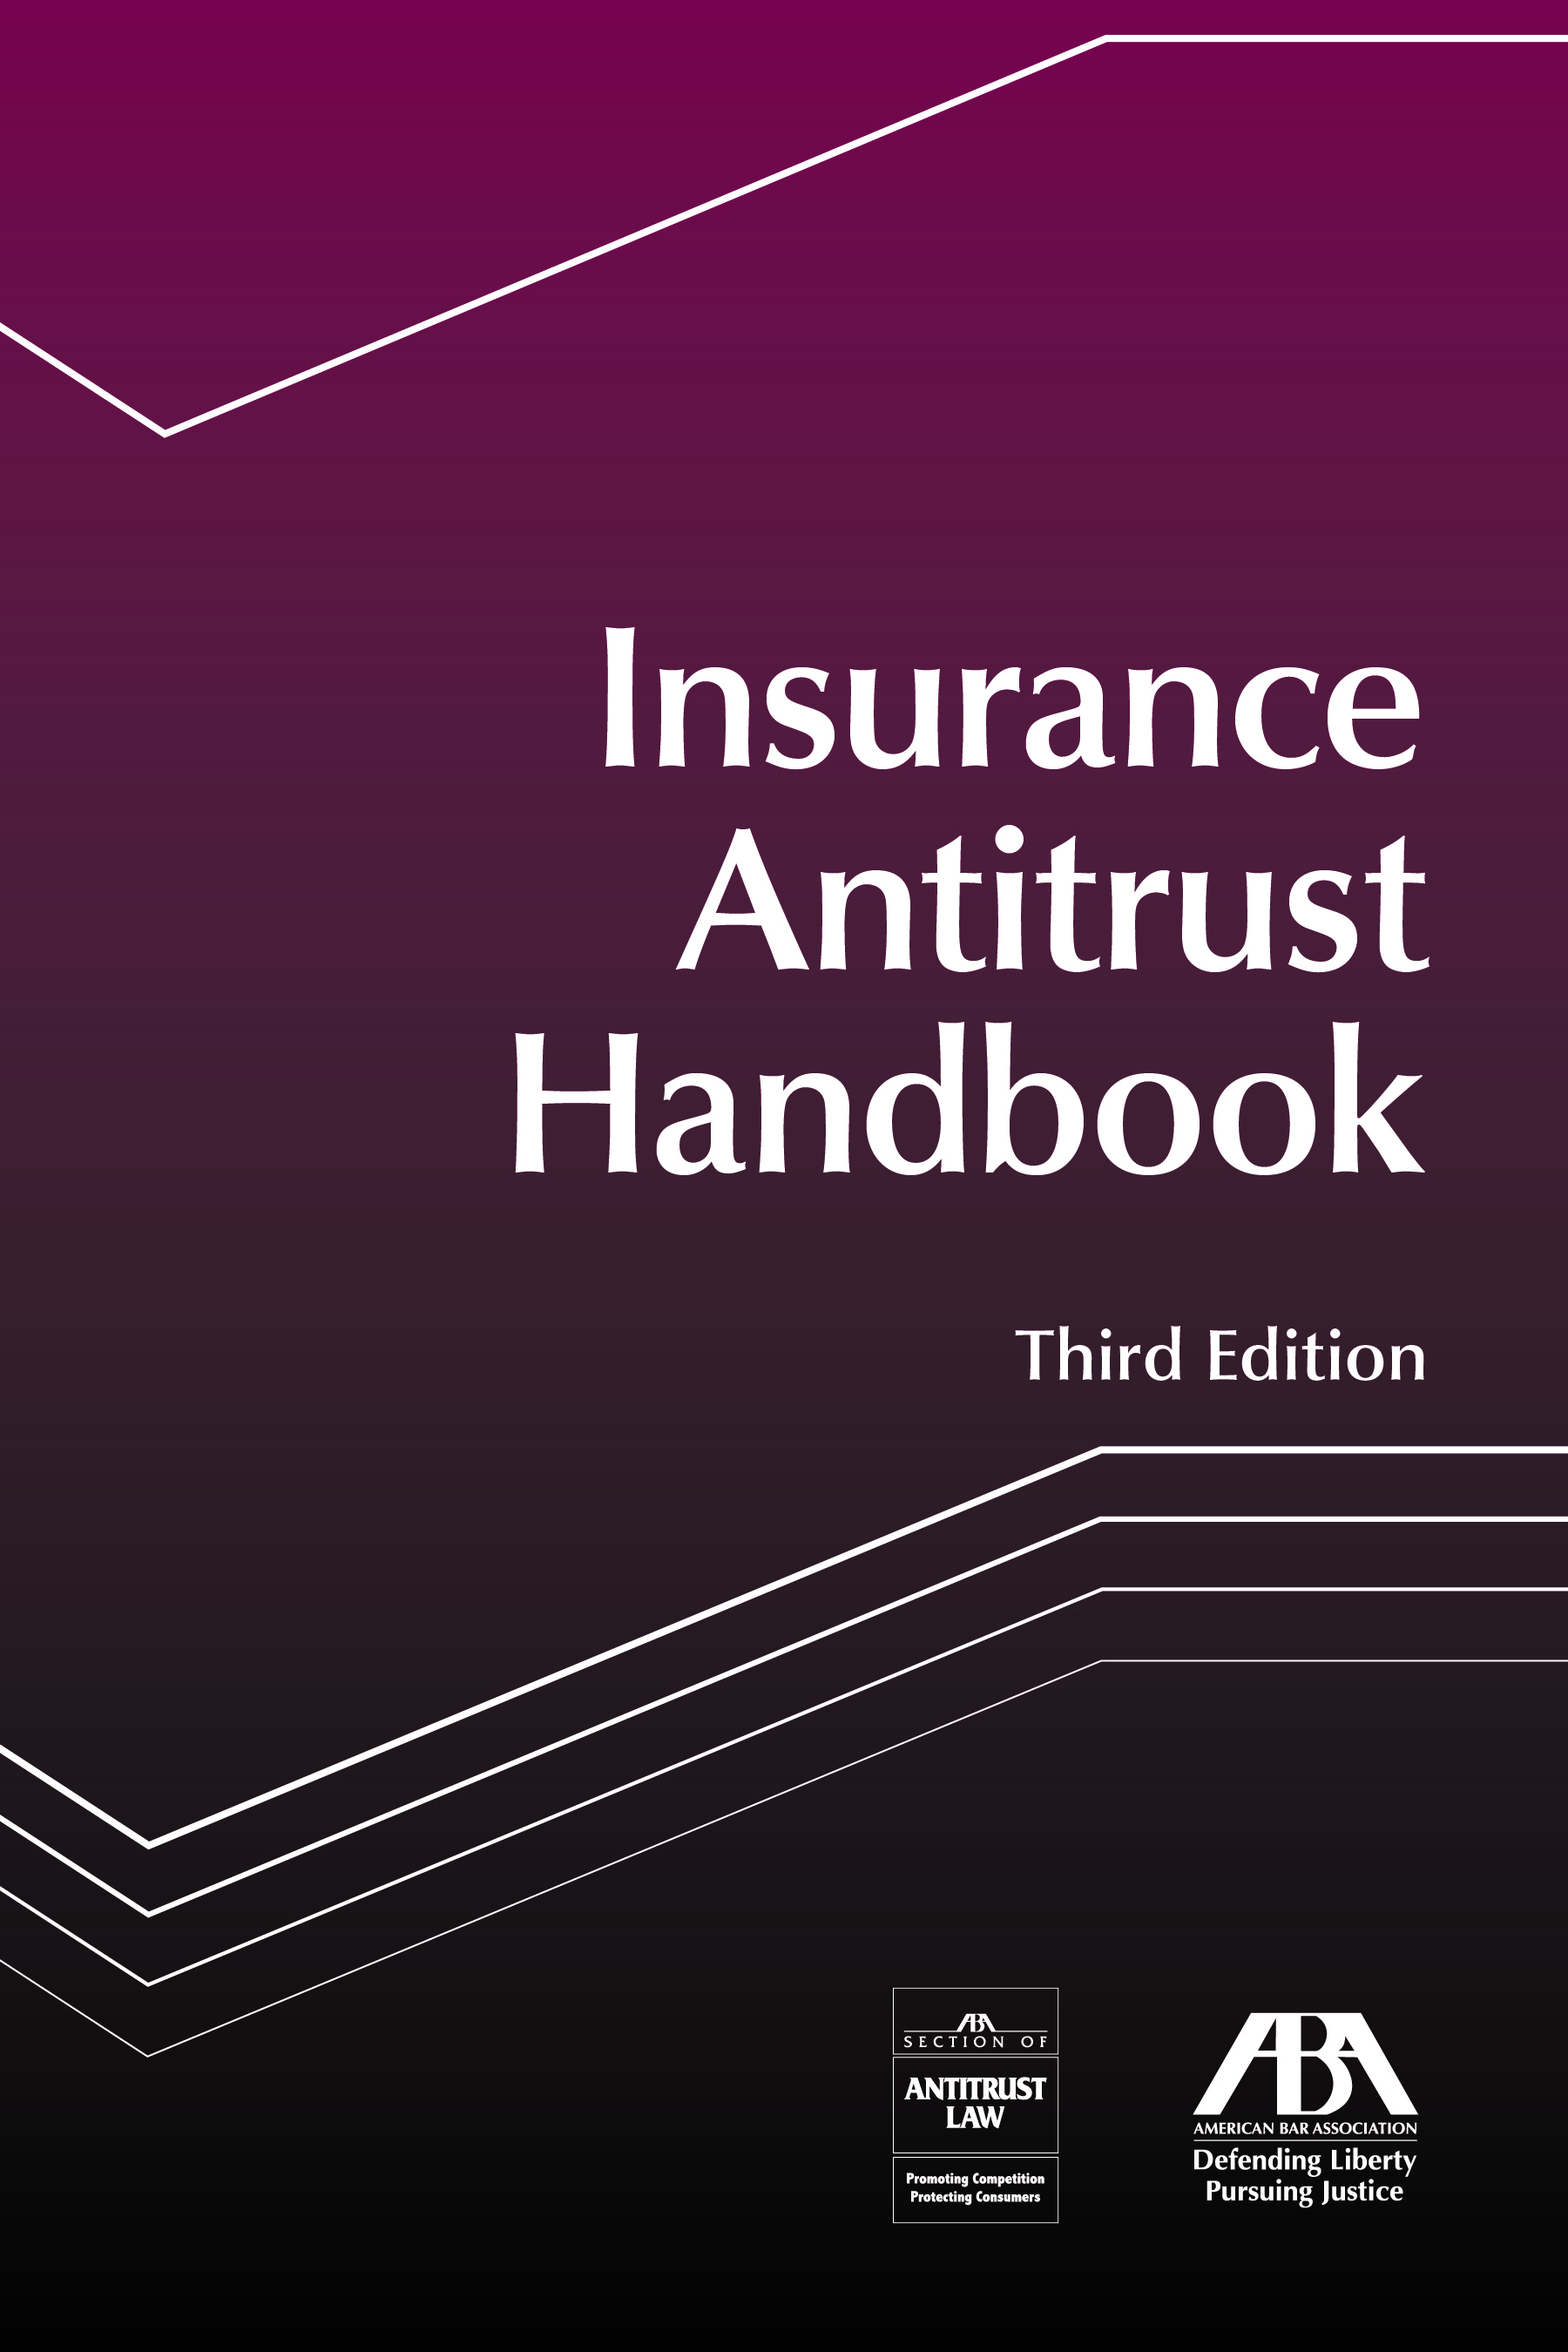 Insurance Antitrust Handbook, Third Edition